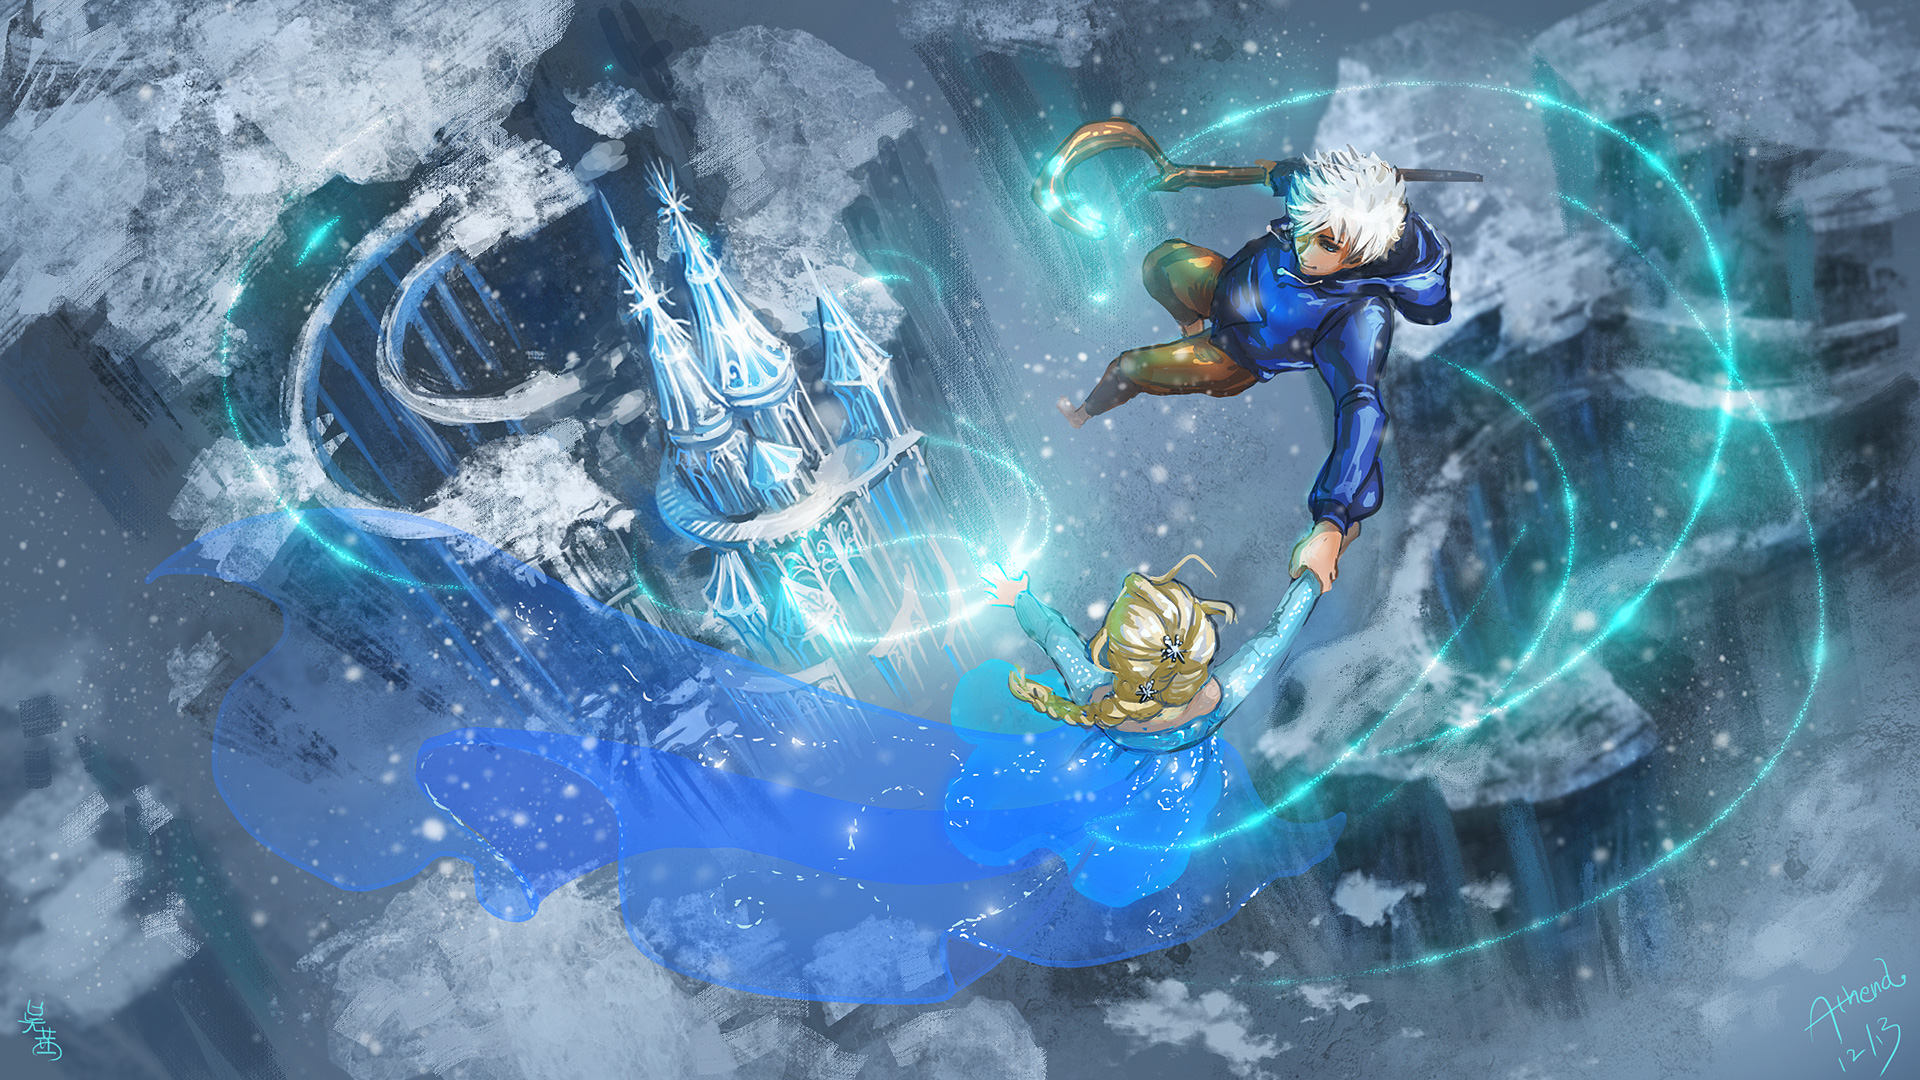 Elsa and jack frost wallpapers wallpapersafari elsa and jack frosta song of ice and frost by athena erocith on 1920x1080 thecheapjerseys Gallery